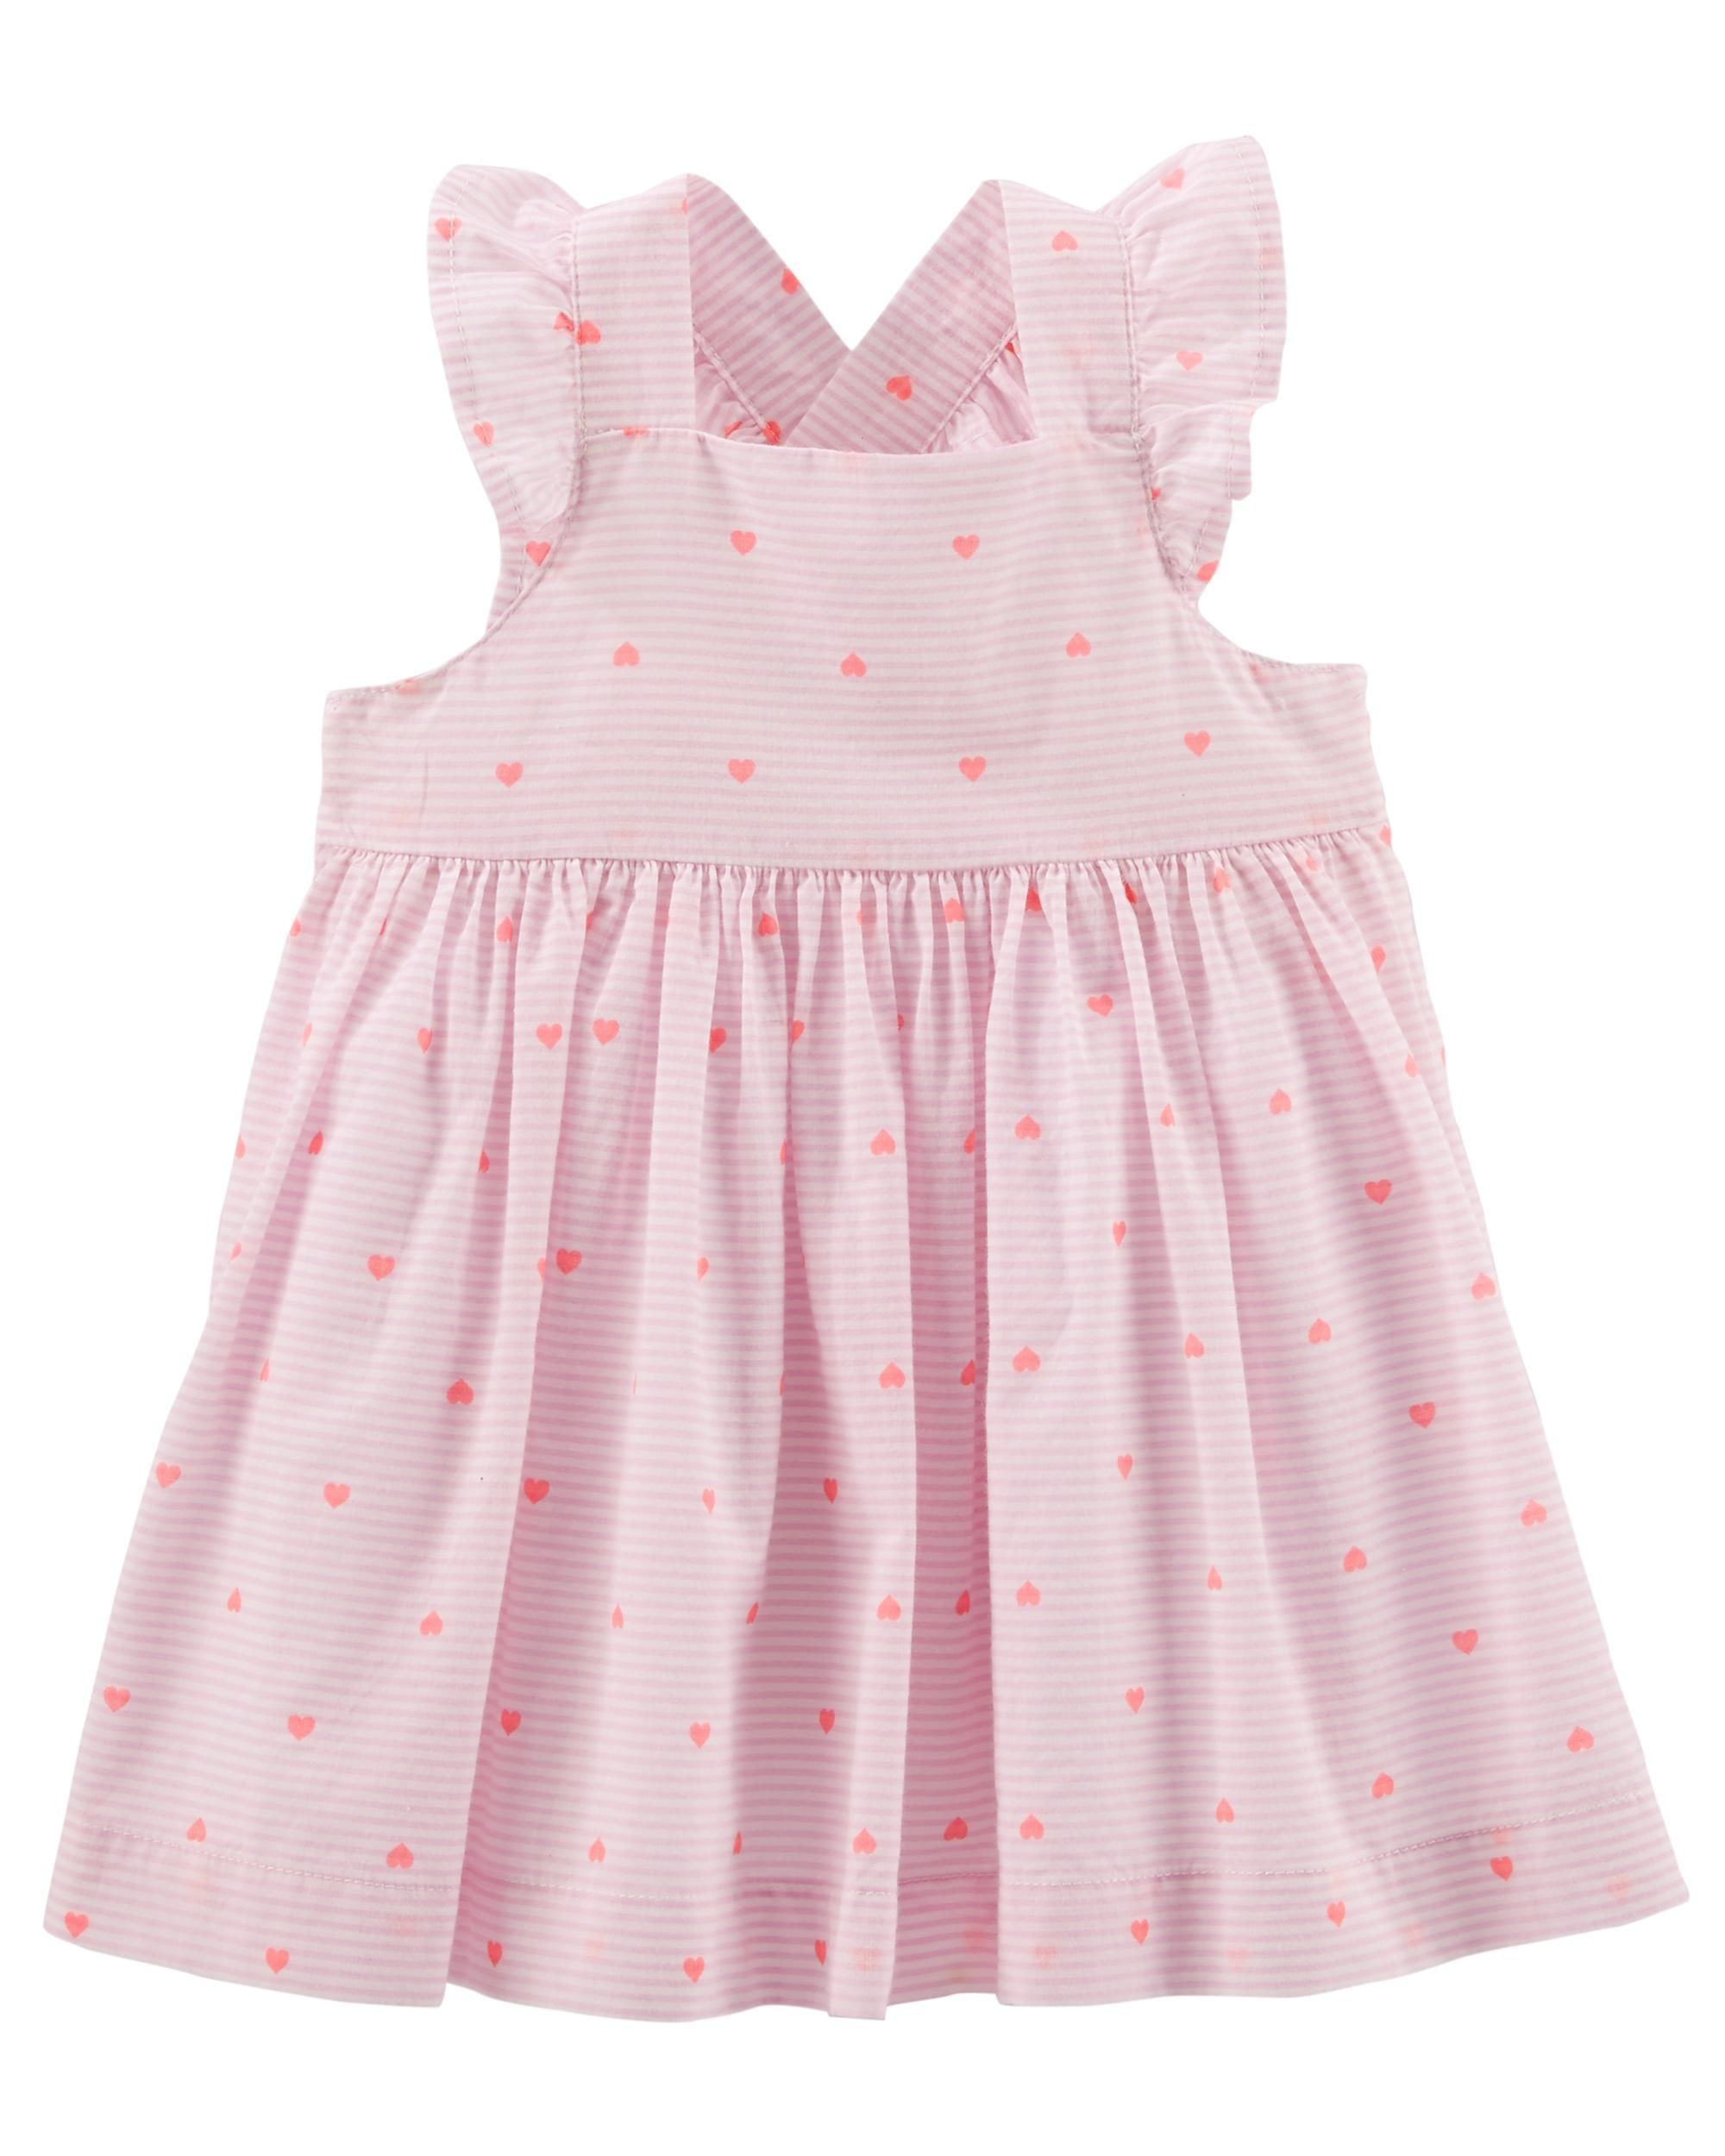 Cross Back Heart Dress Patterns Baby Checklist And Fashion Kids Mom N Bab Blouse Madison Denim Size 5t